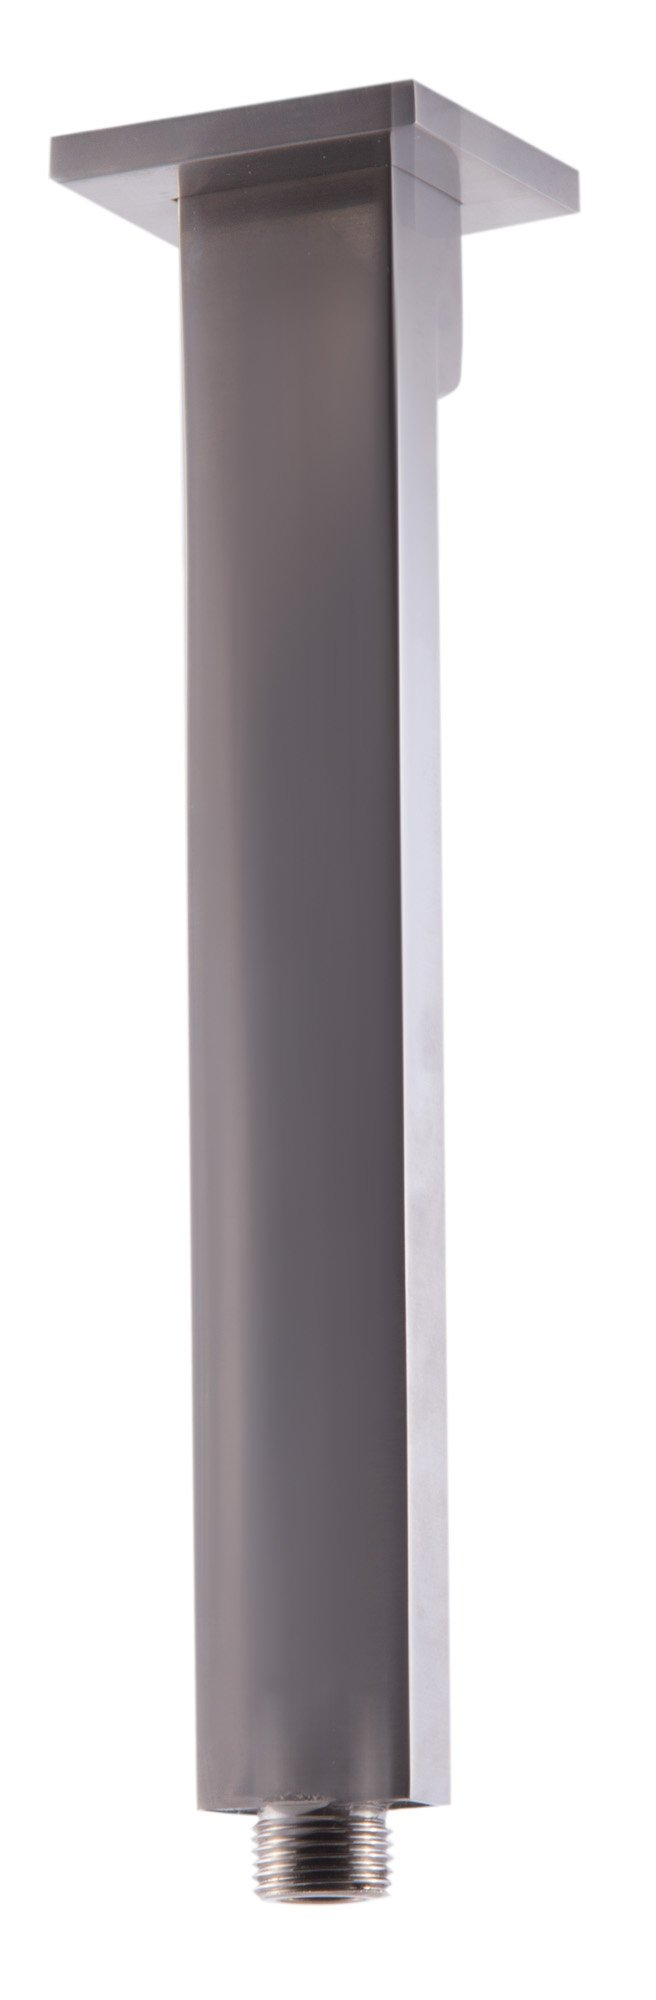 ALFI brand AB9SC-BN 9'' Modern Square Ceiling Mounted Shower Arm, Brushed Nickel